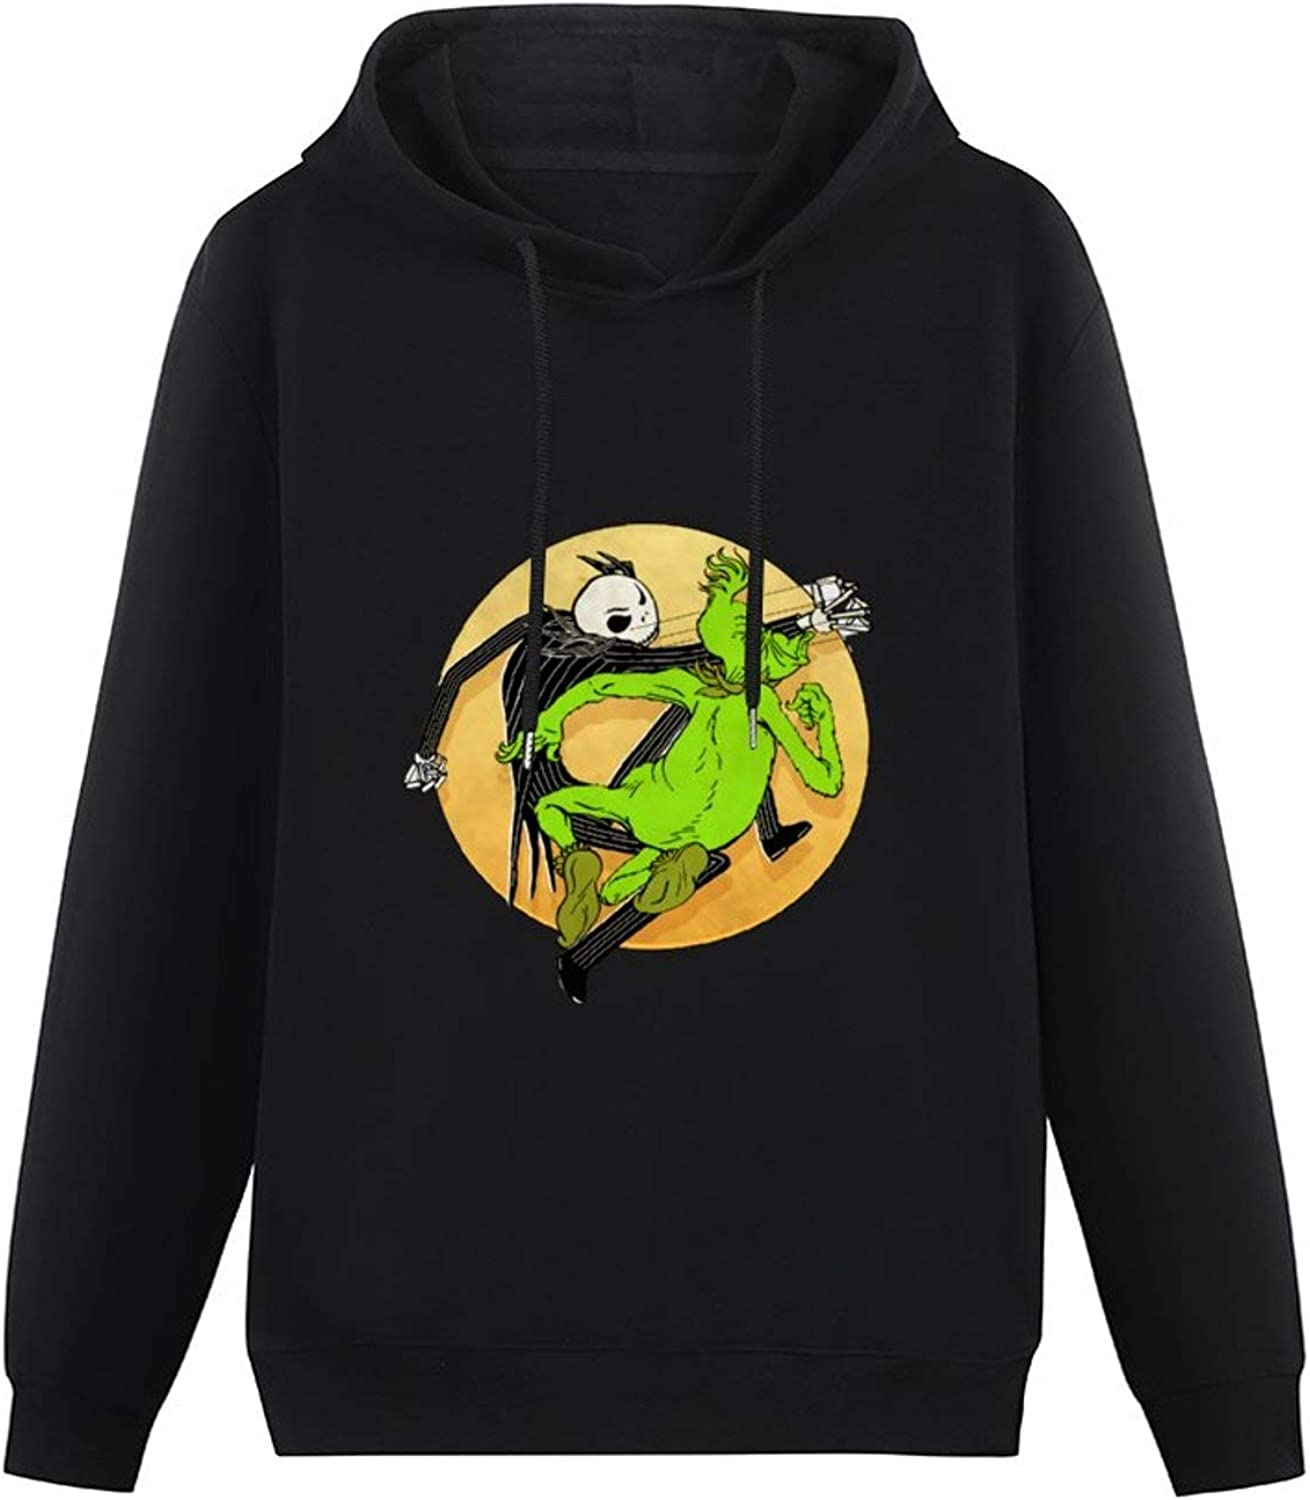 Grinches-Jack-Skellington Women's Hoodie Sports Warm Casual Fashion Sweater